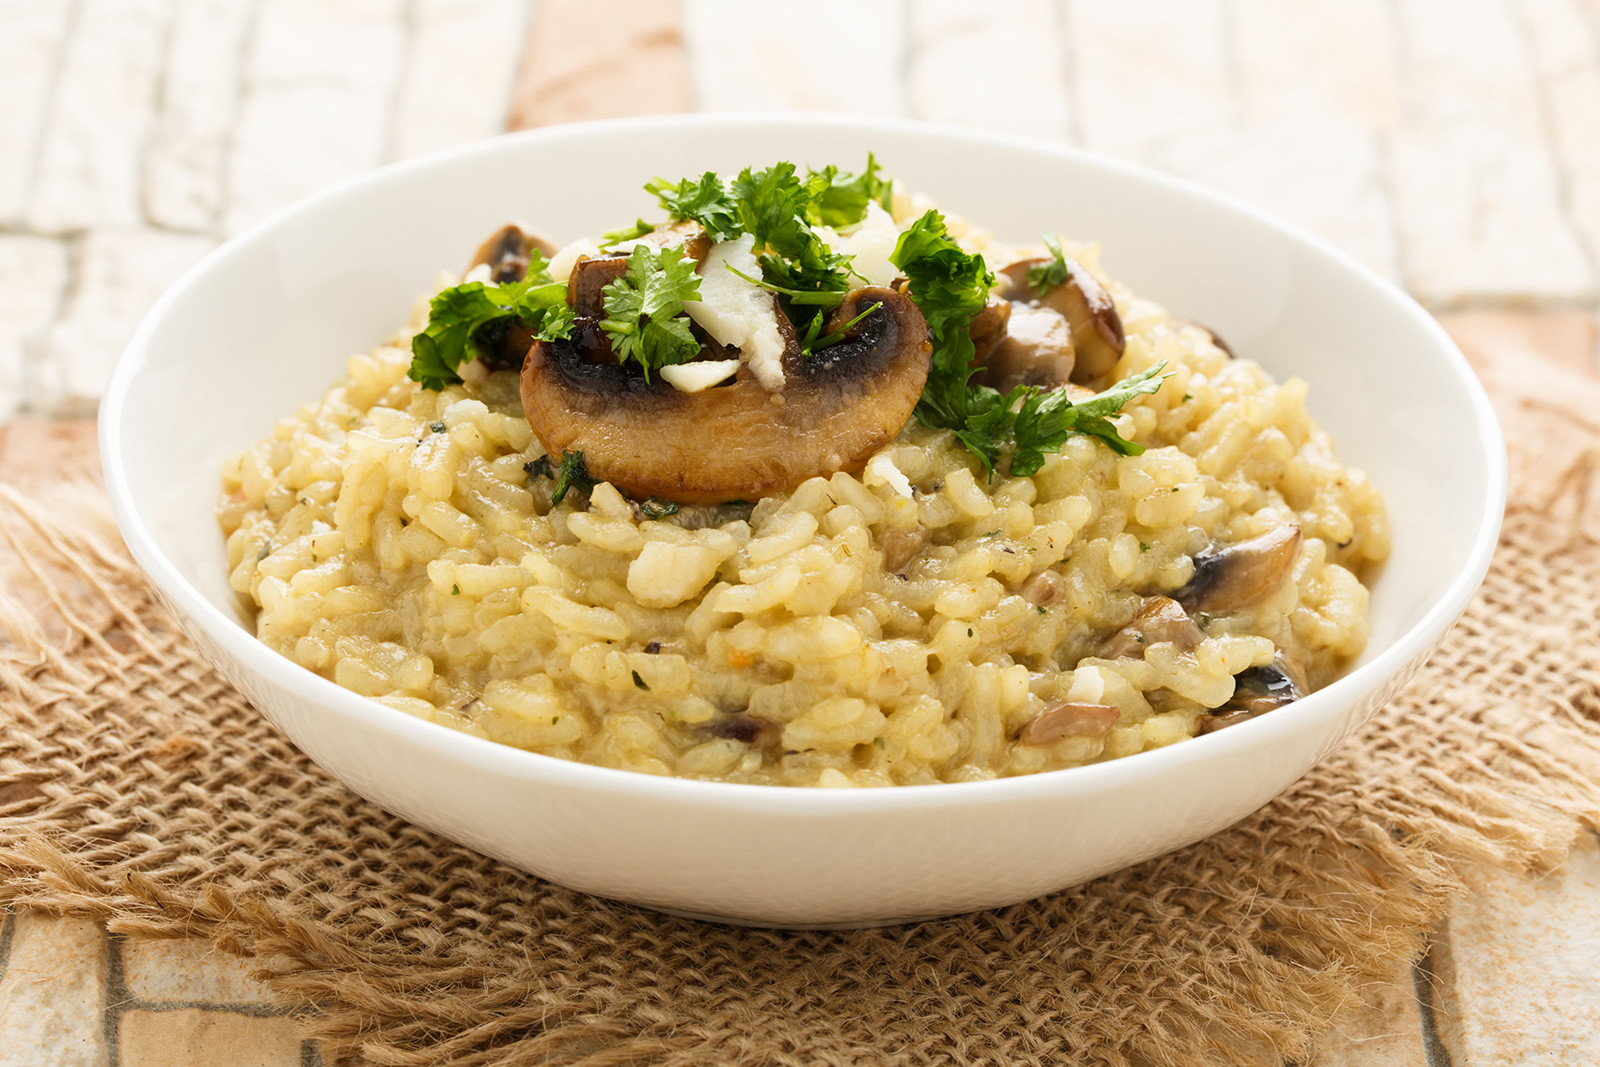 Mushroom risotto with fresh herbs, Parmesan cheese and a bunch of mushrooms on top of it, in a white bowl.